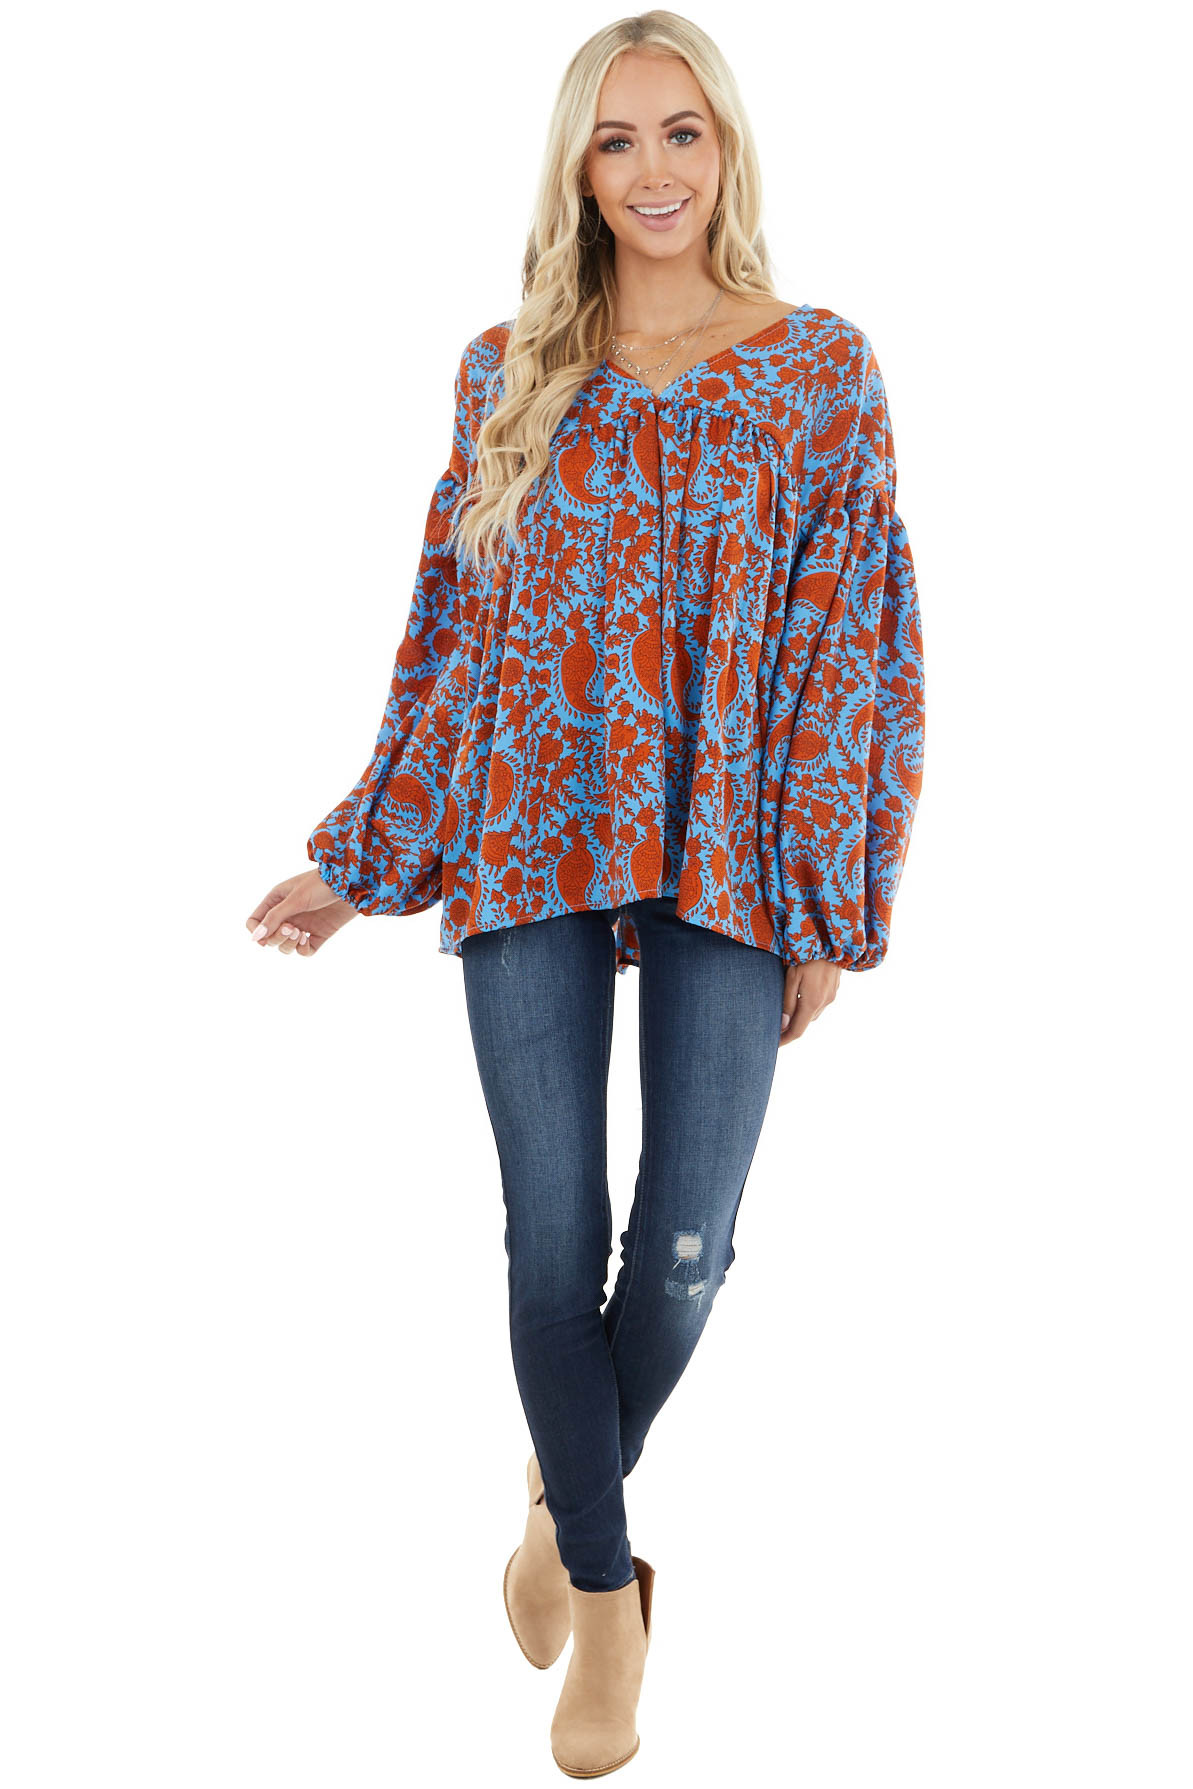 Dusty Blue and Rust Paisley Print Top with Bubble Sleeves